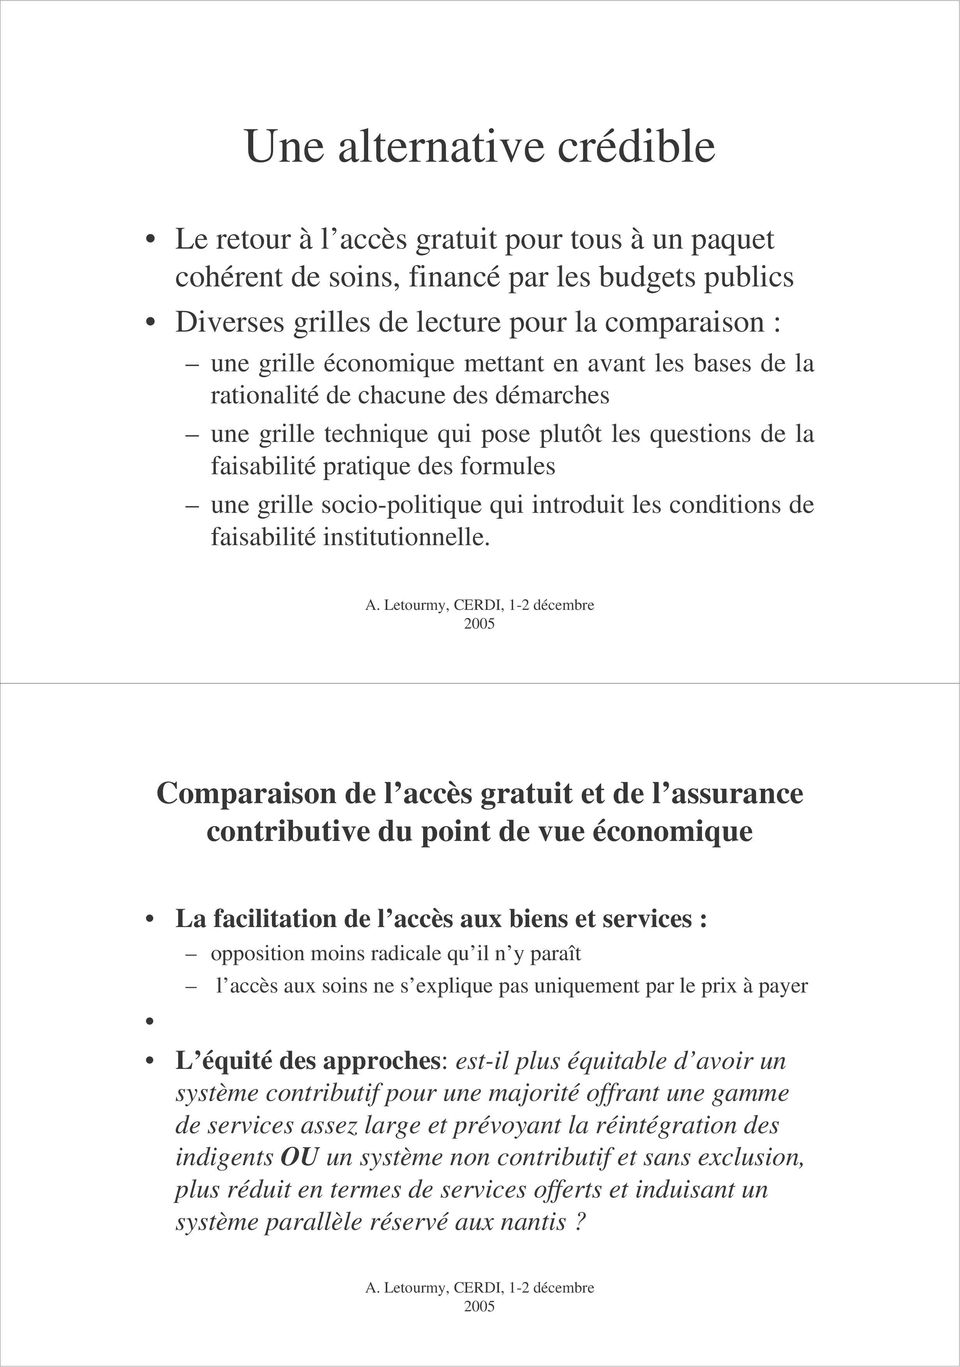 introduit les conditions de faisabilité institutionnelle.